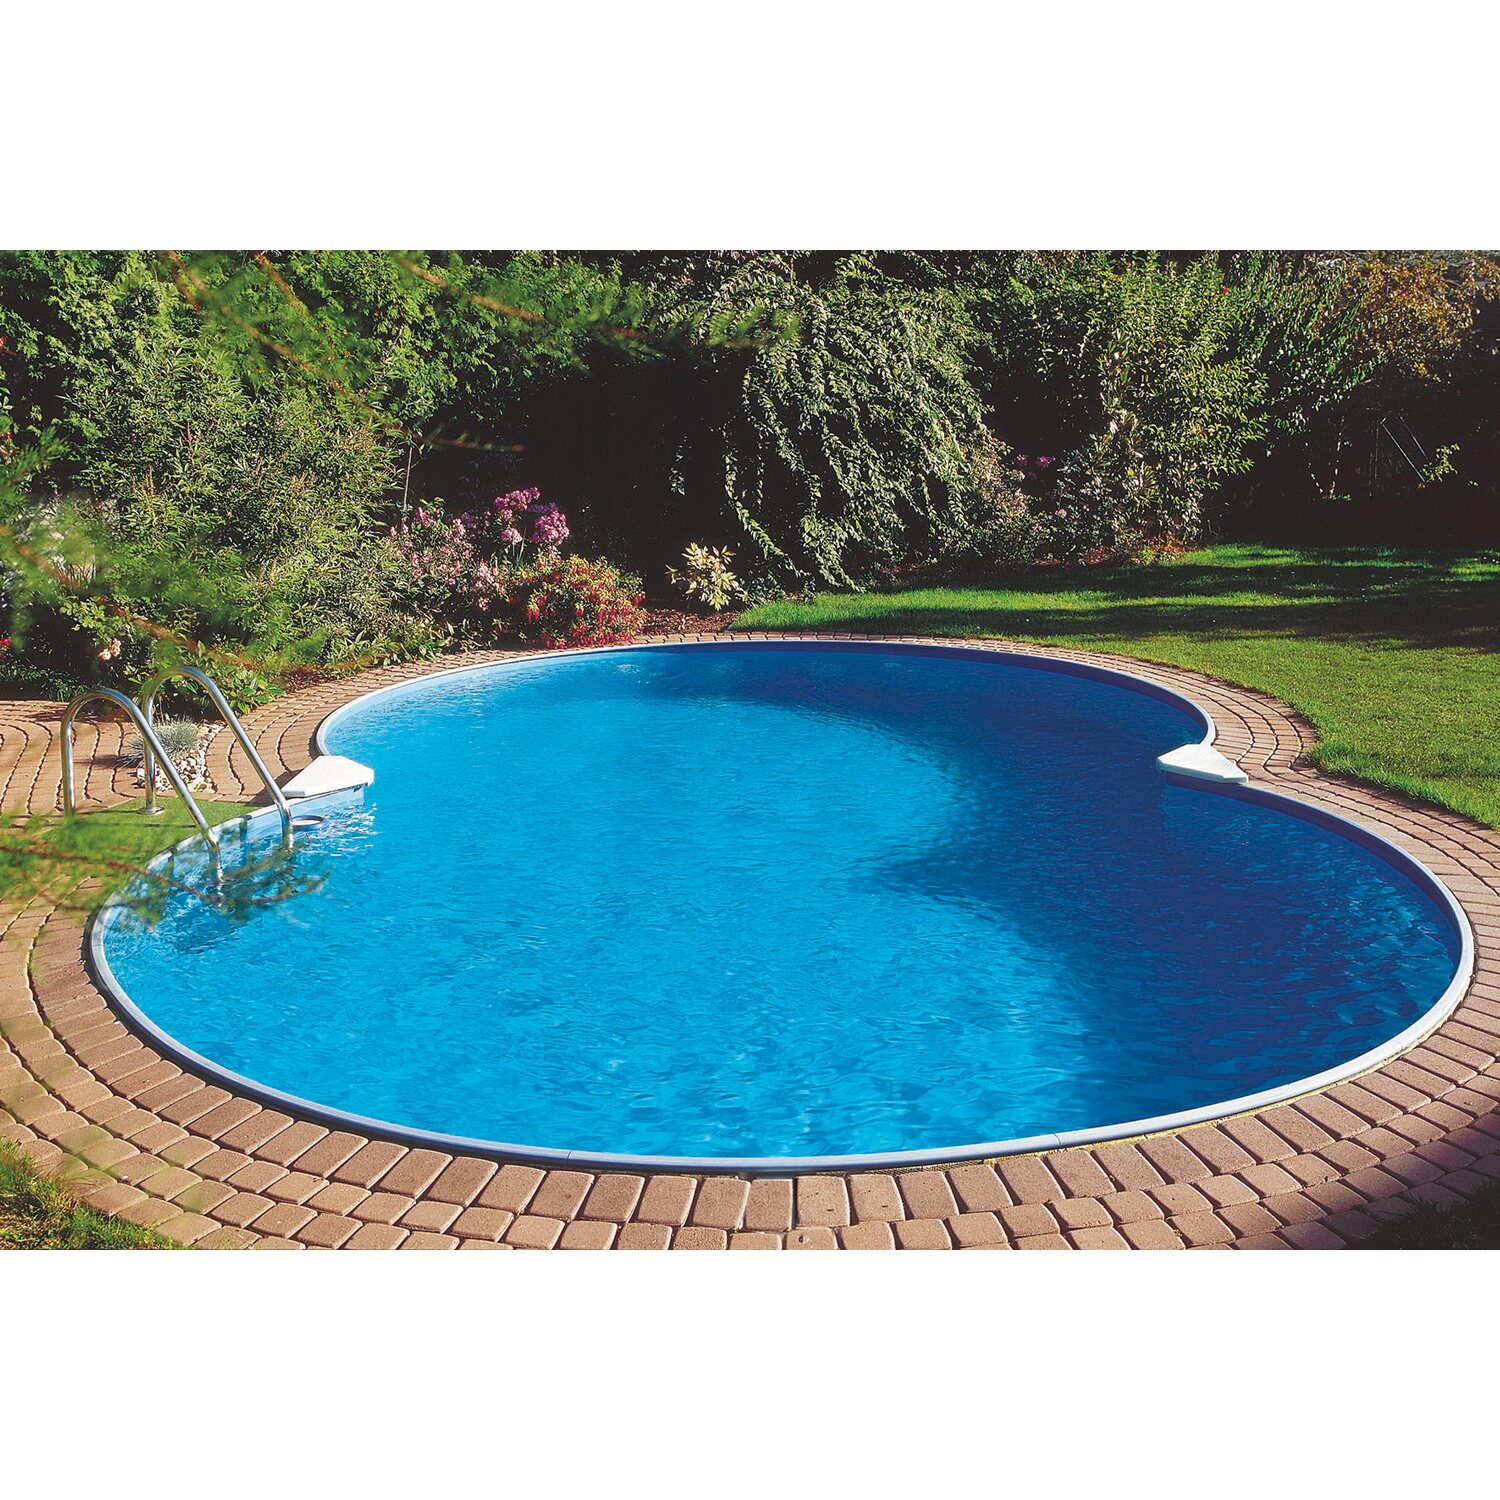 Stahlwand pool set cannes einbaubecken achtform 625 cm x for Pool staubsauger obi